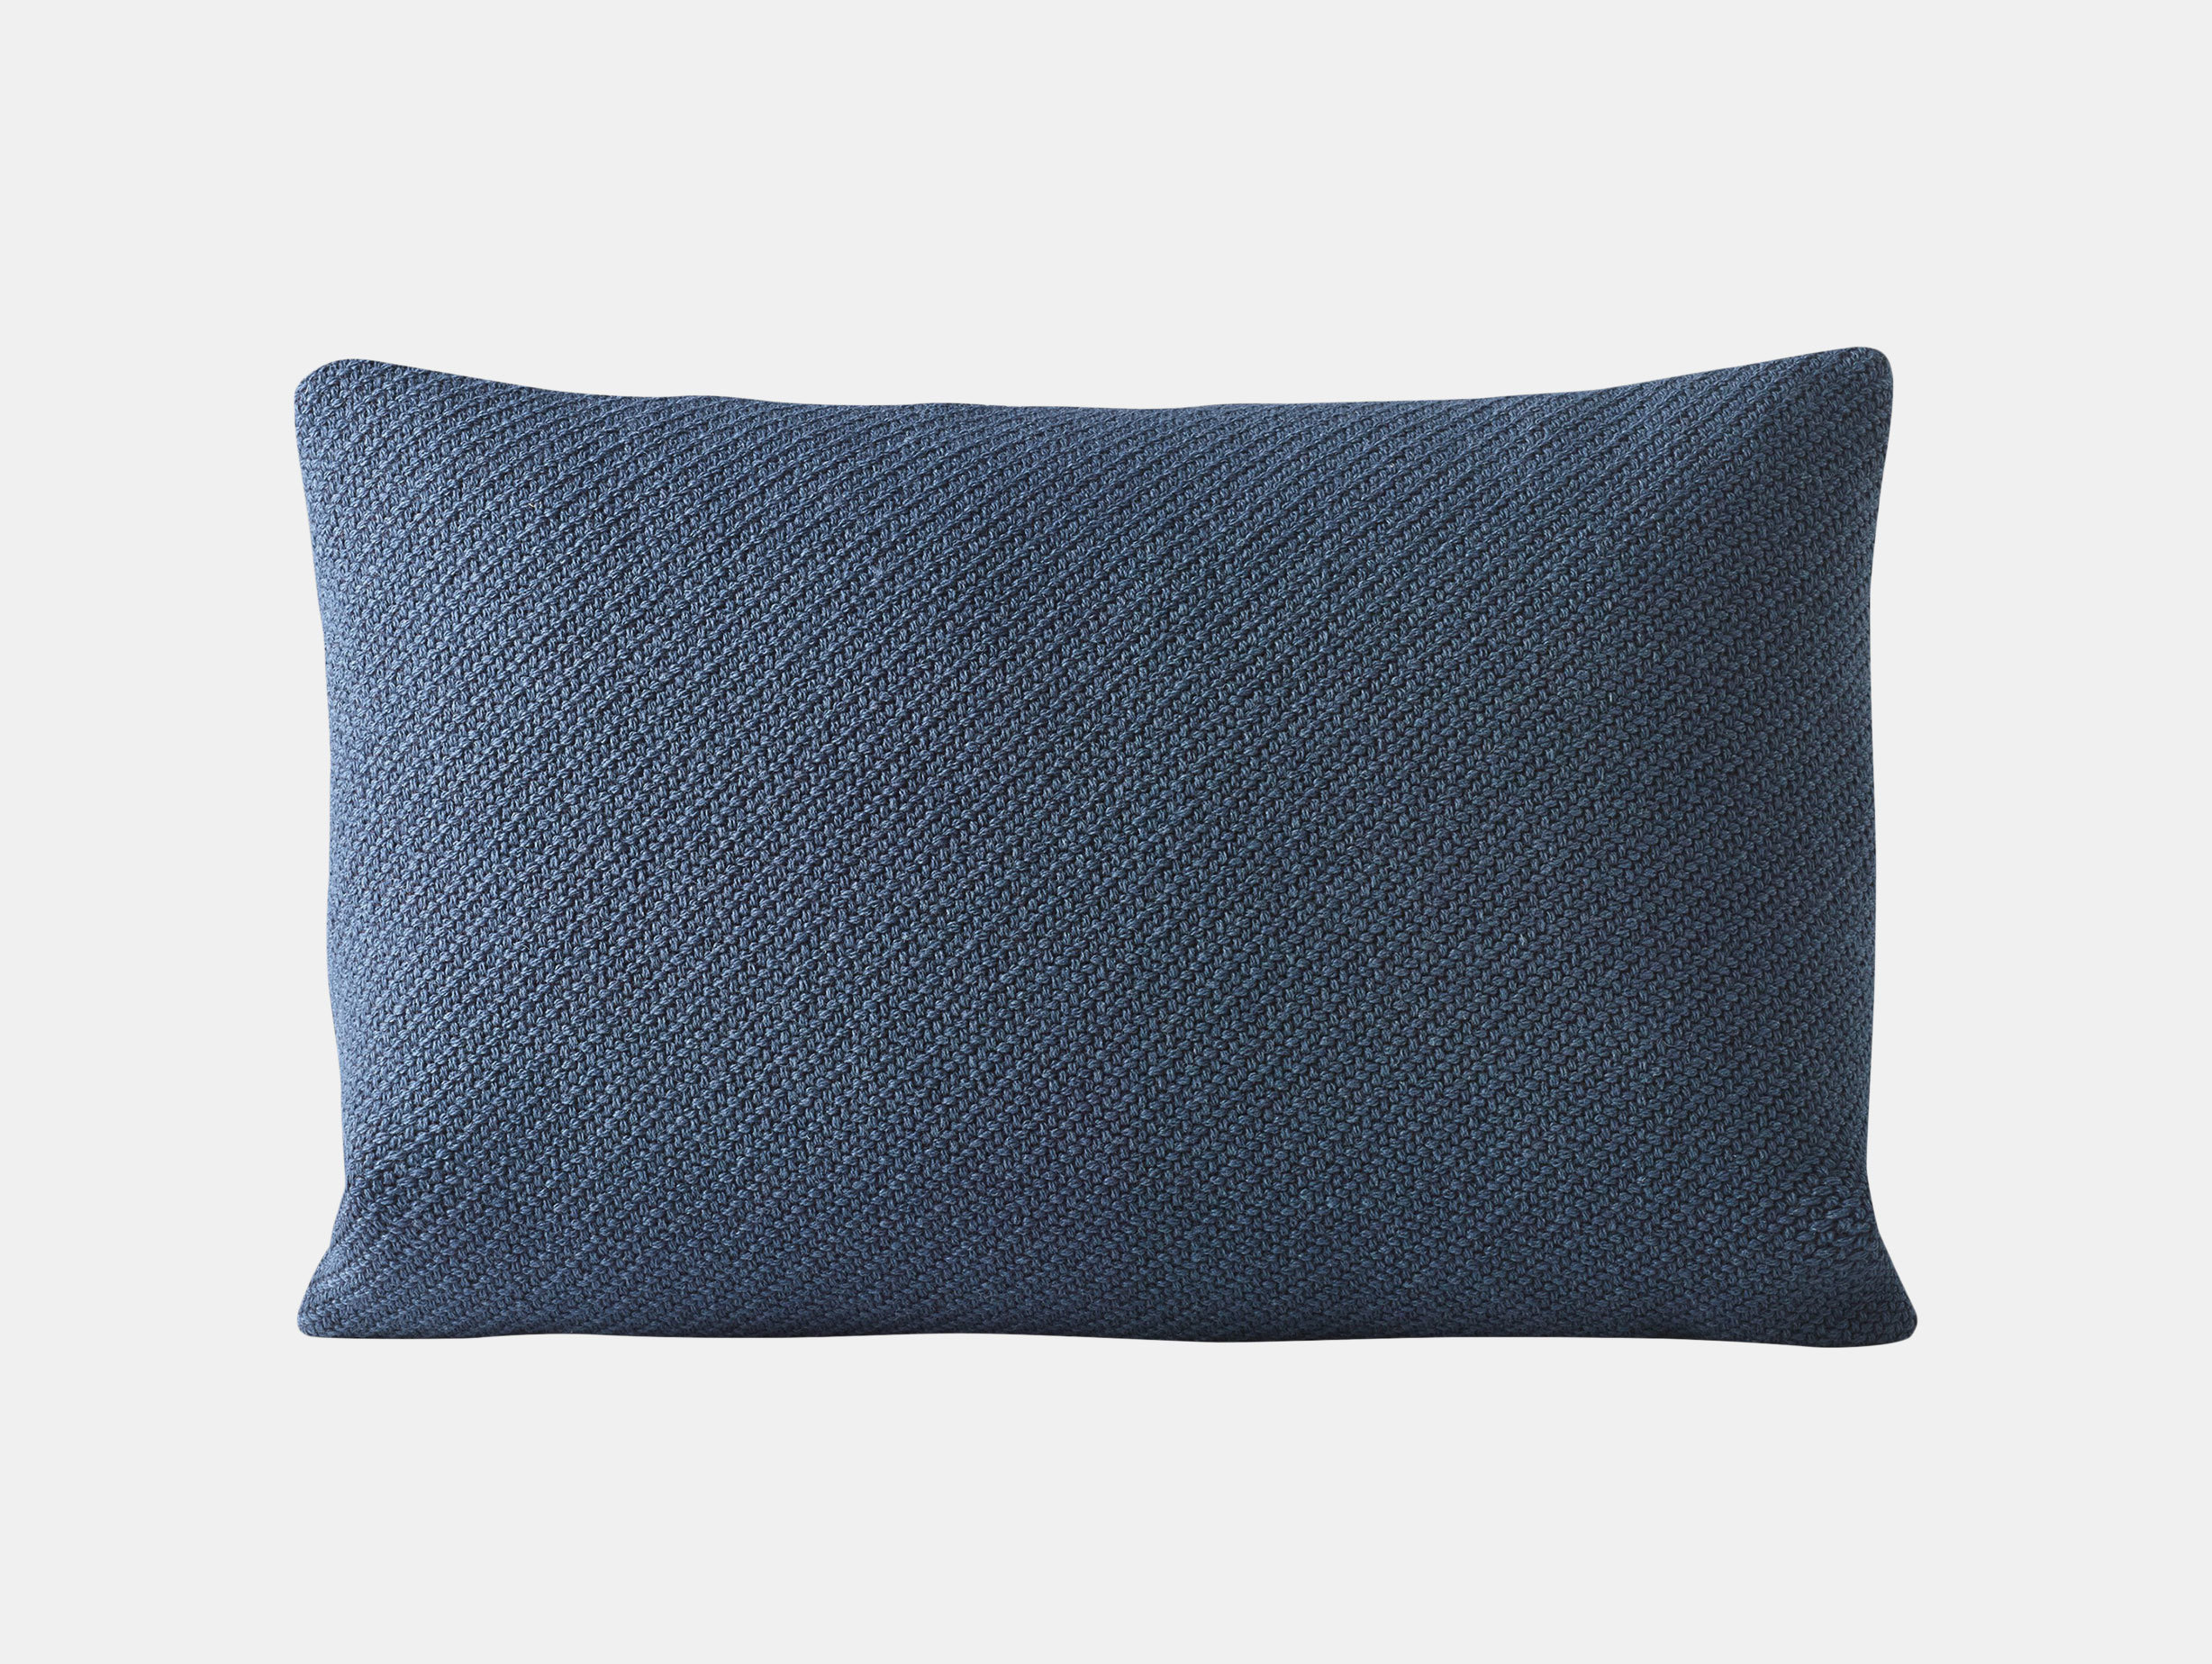 Mingle Cushion image 10